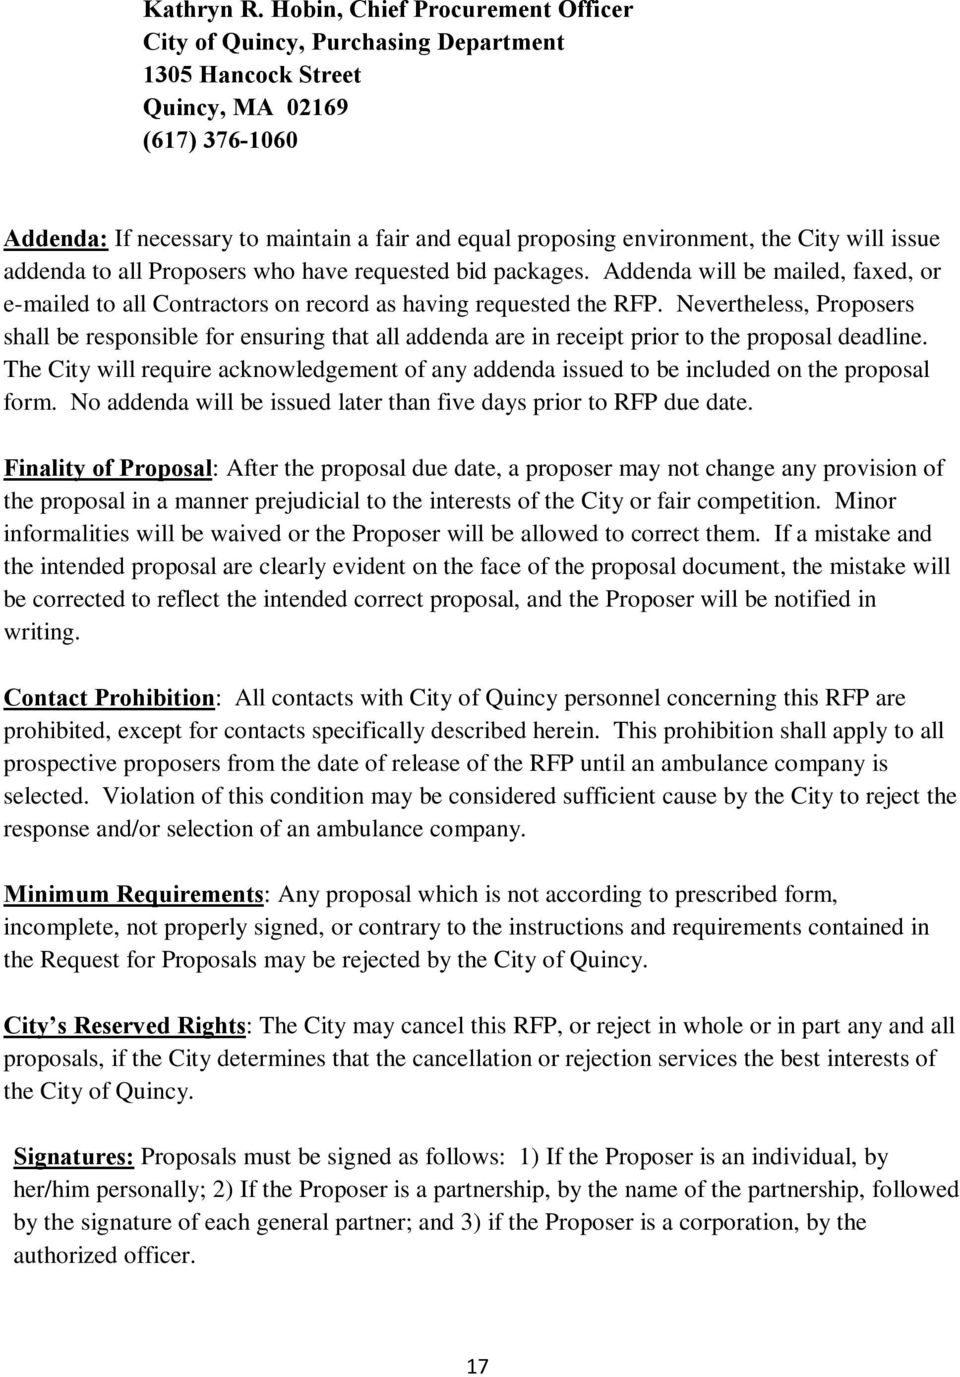 the City will issue addenda to all Proposers who have requested bid packages. Addenda will be mailed, faxed, or e-mailed to all Contractors on record as having requested the RFP.